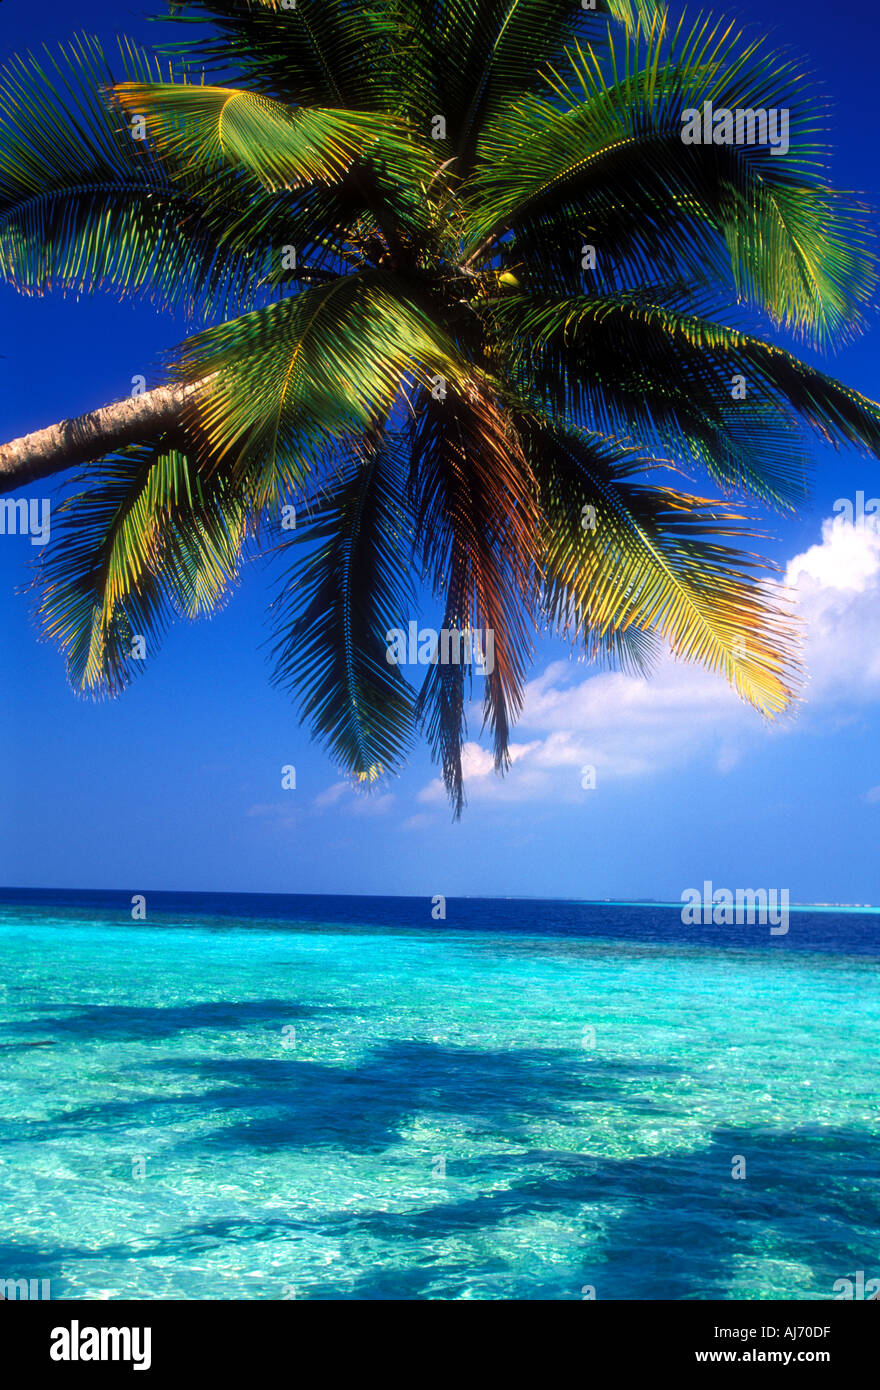 Coconut palm tree extended over shallow water in the Maldives Indian Ocean - Stock Image